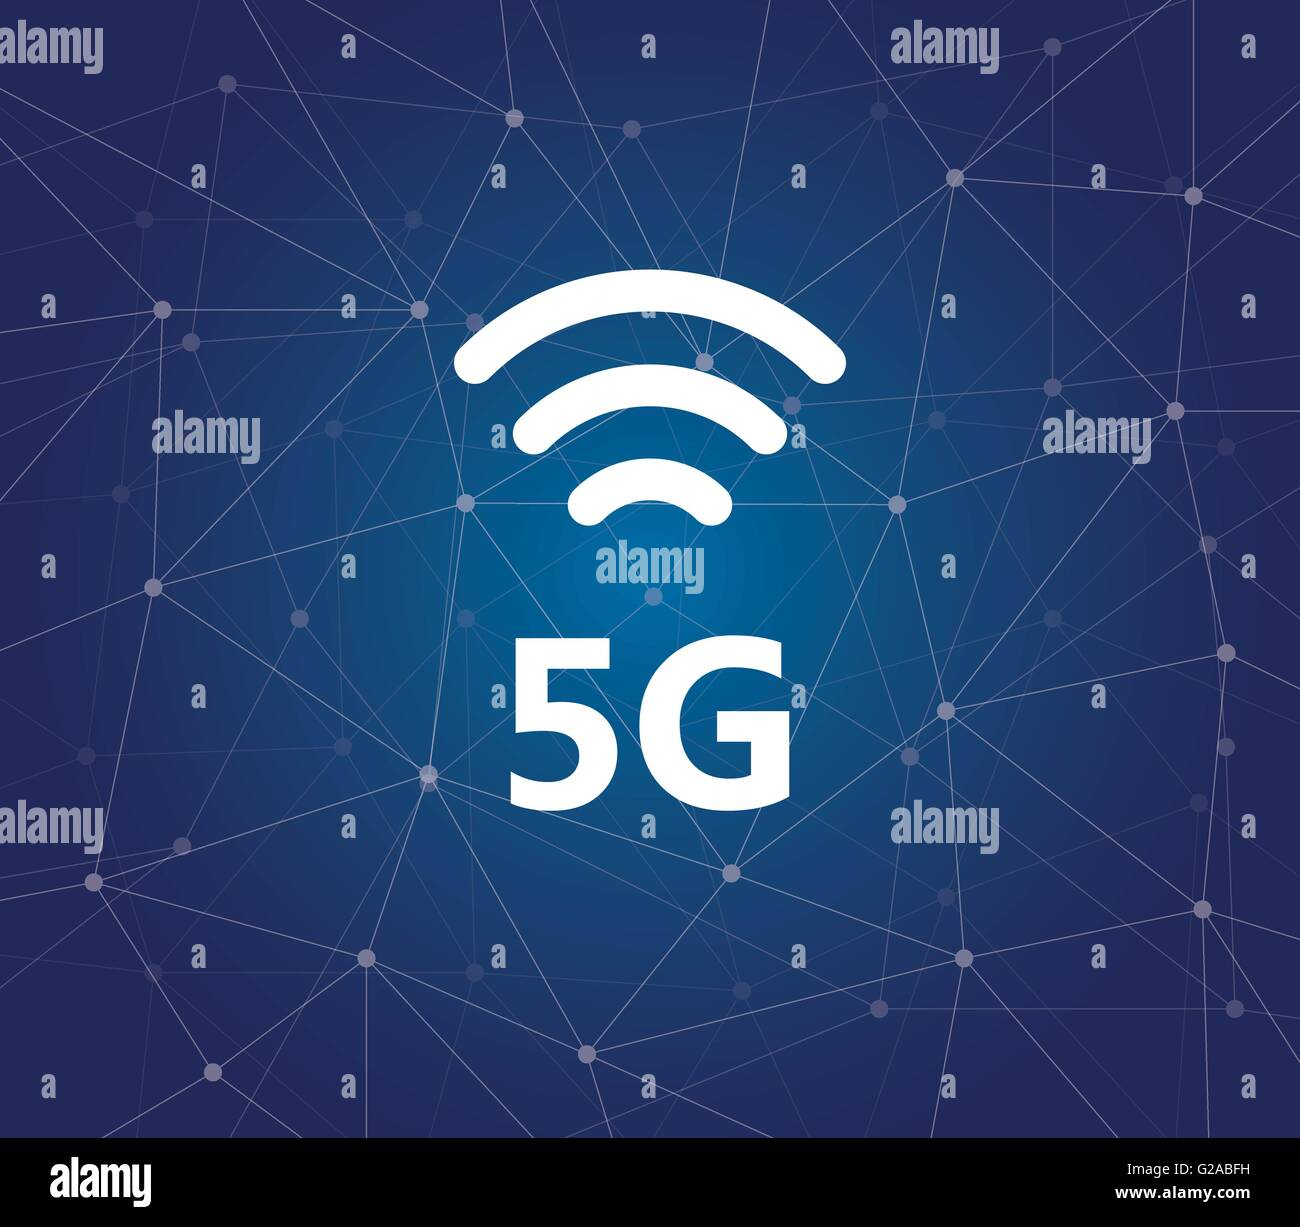 Image result for 5g, photos, art